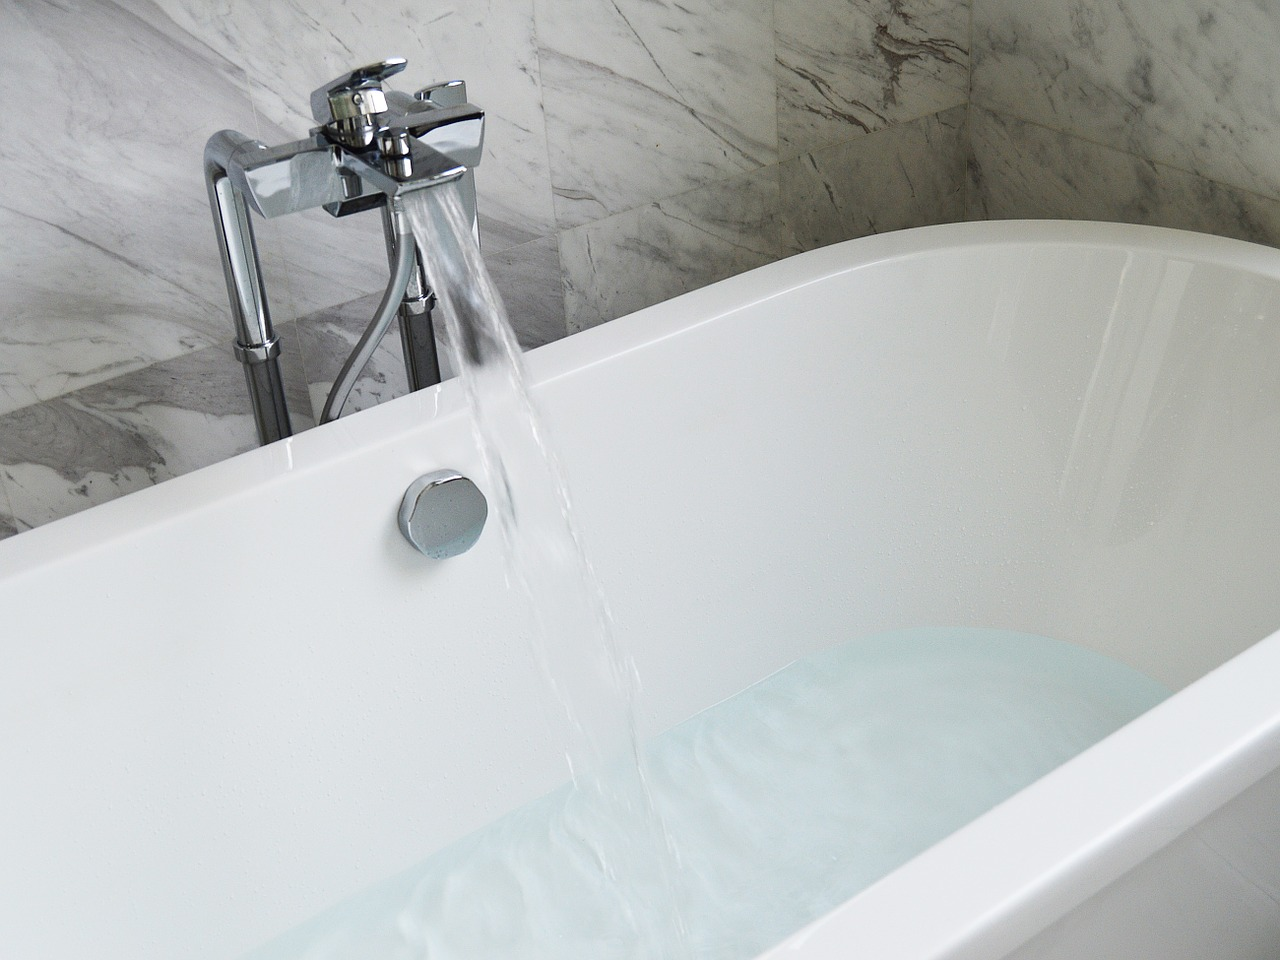 Luxury bathtub with running water